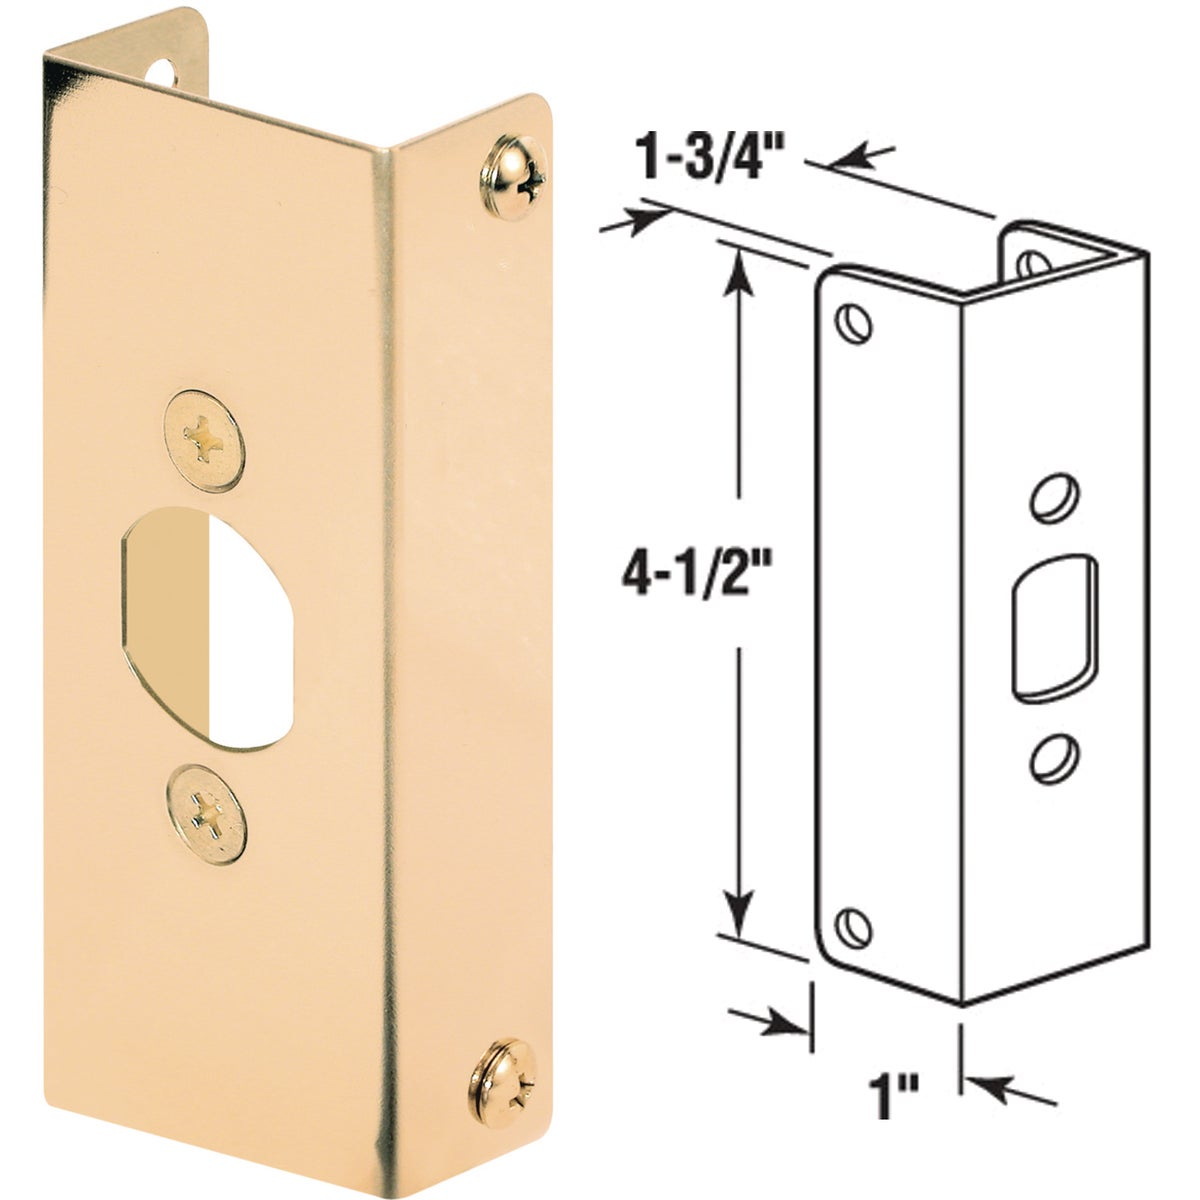 "1-3/4""DOOR REINFORCEMENT - U 9567 by Prime Line Products"